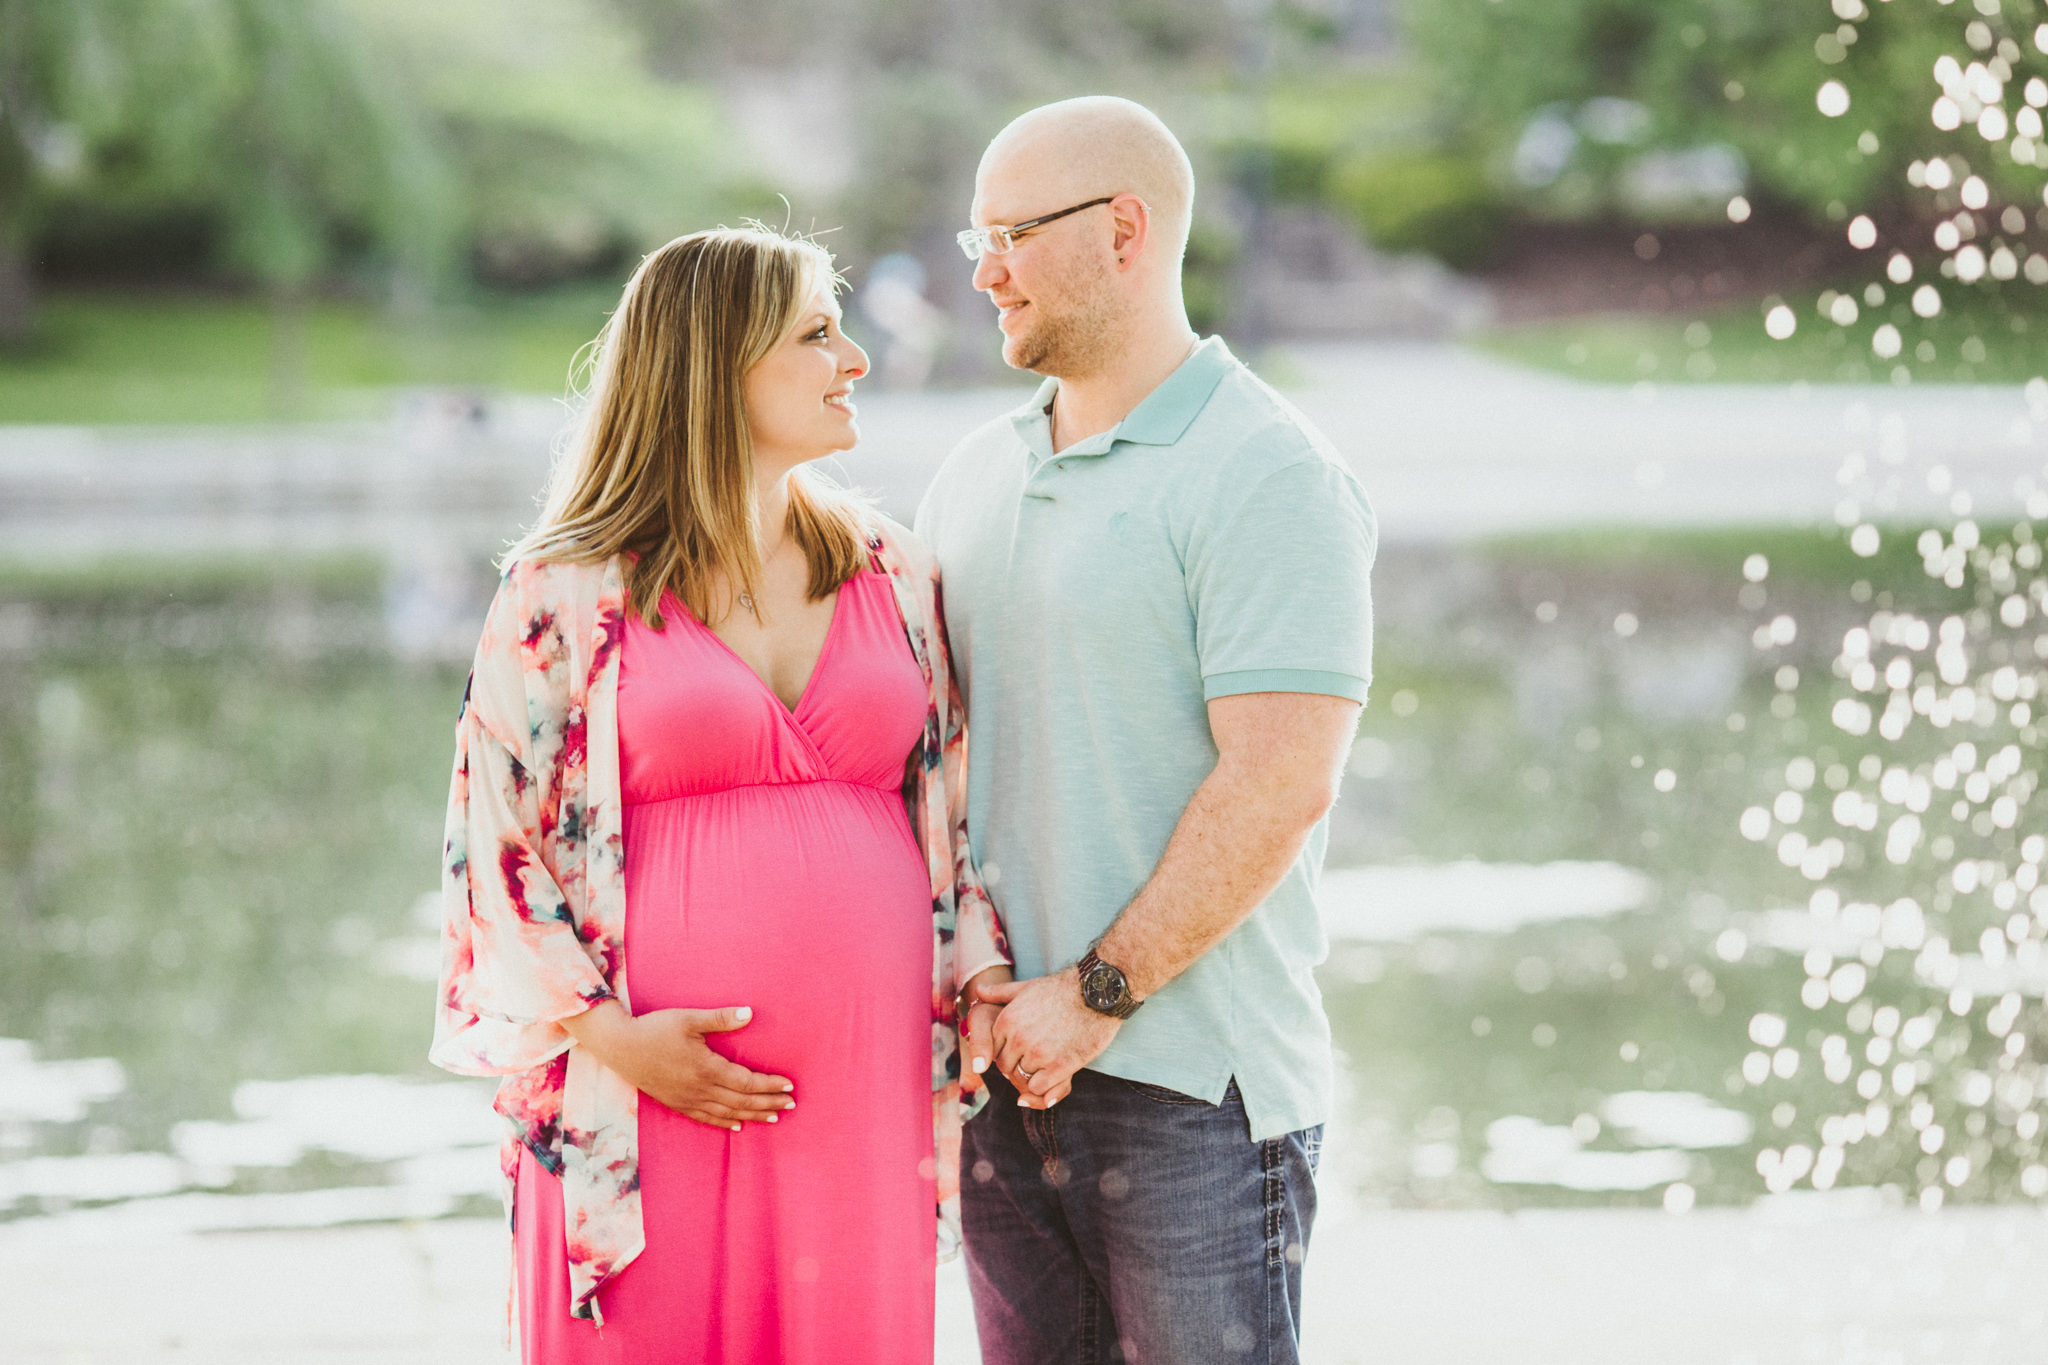 pregnant wife in pink dress by fountain | Cleveland, OH maternity photographer